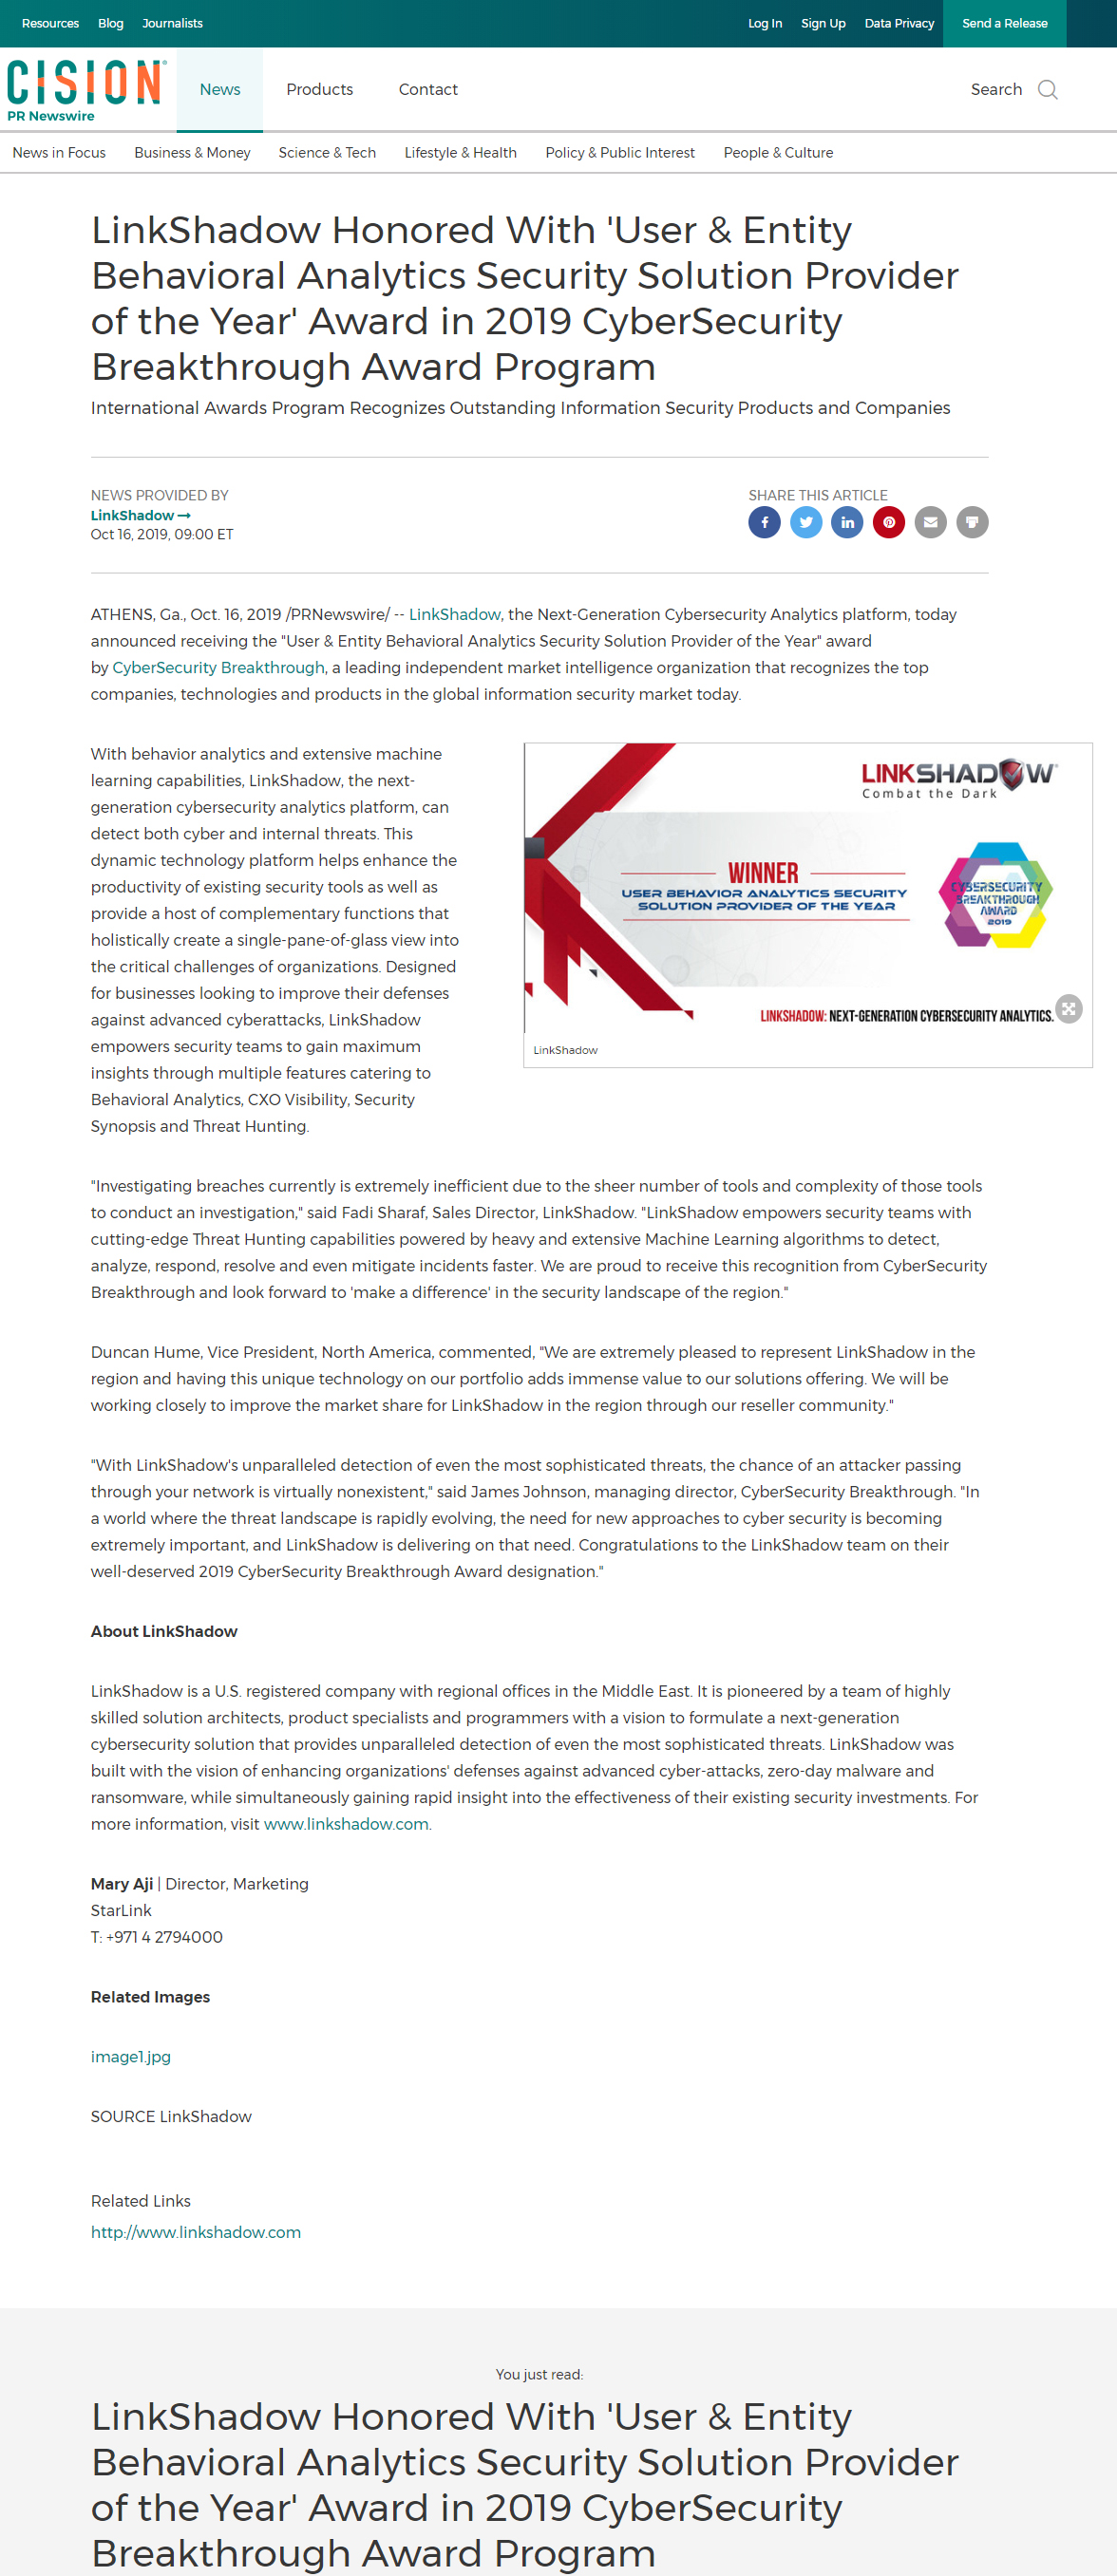 """LinkShadow Honored with """"User & Entity Behavioral Analytics Security Solution Provider of the Year"""" Award in 2019 CyberSecurity Breakthrough Award Program"""